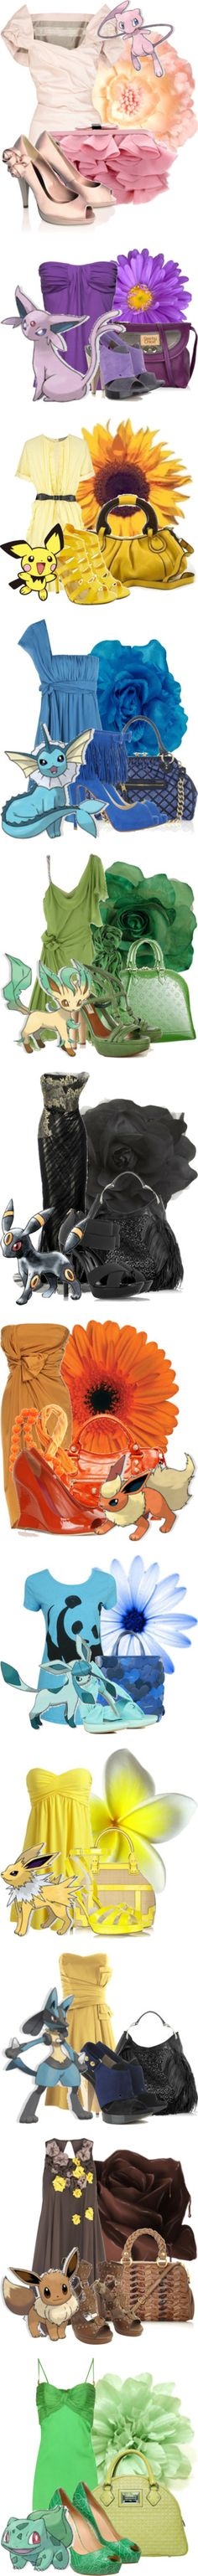 """""""Pokemon and clothes. . .really random"""" by brightheart ❤ liked on Polyvore"""